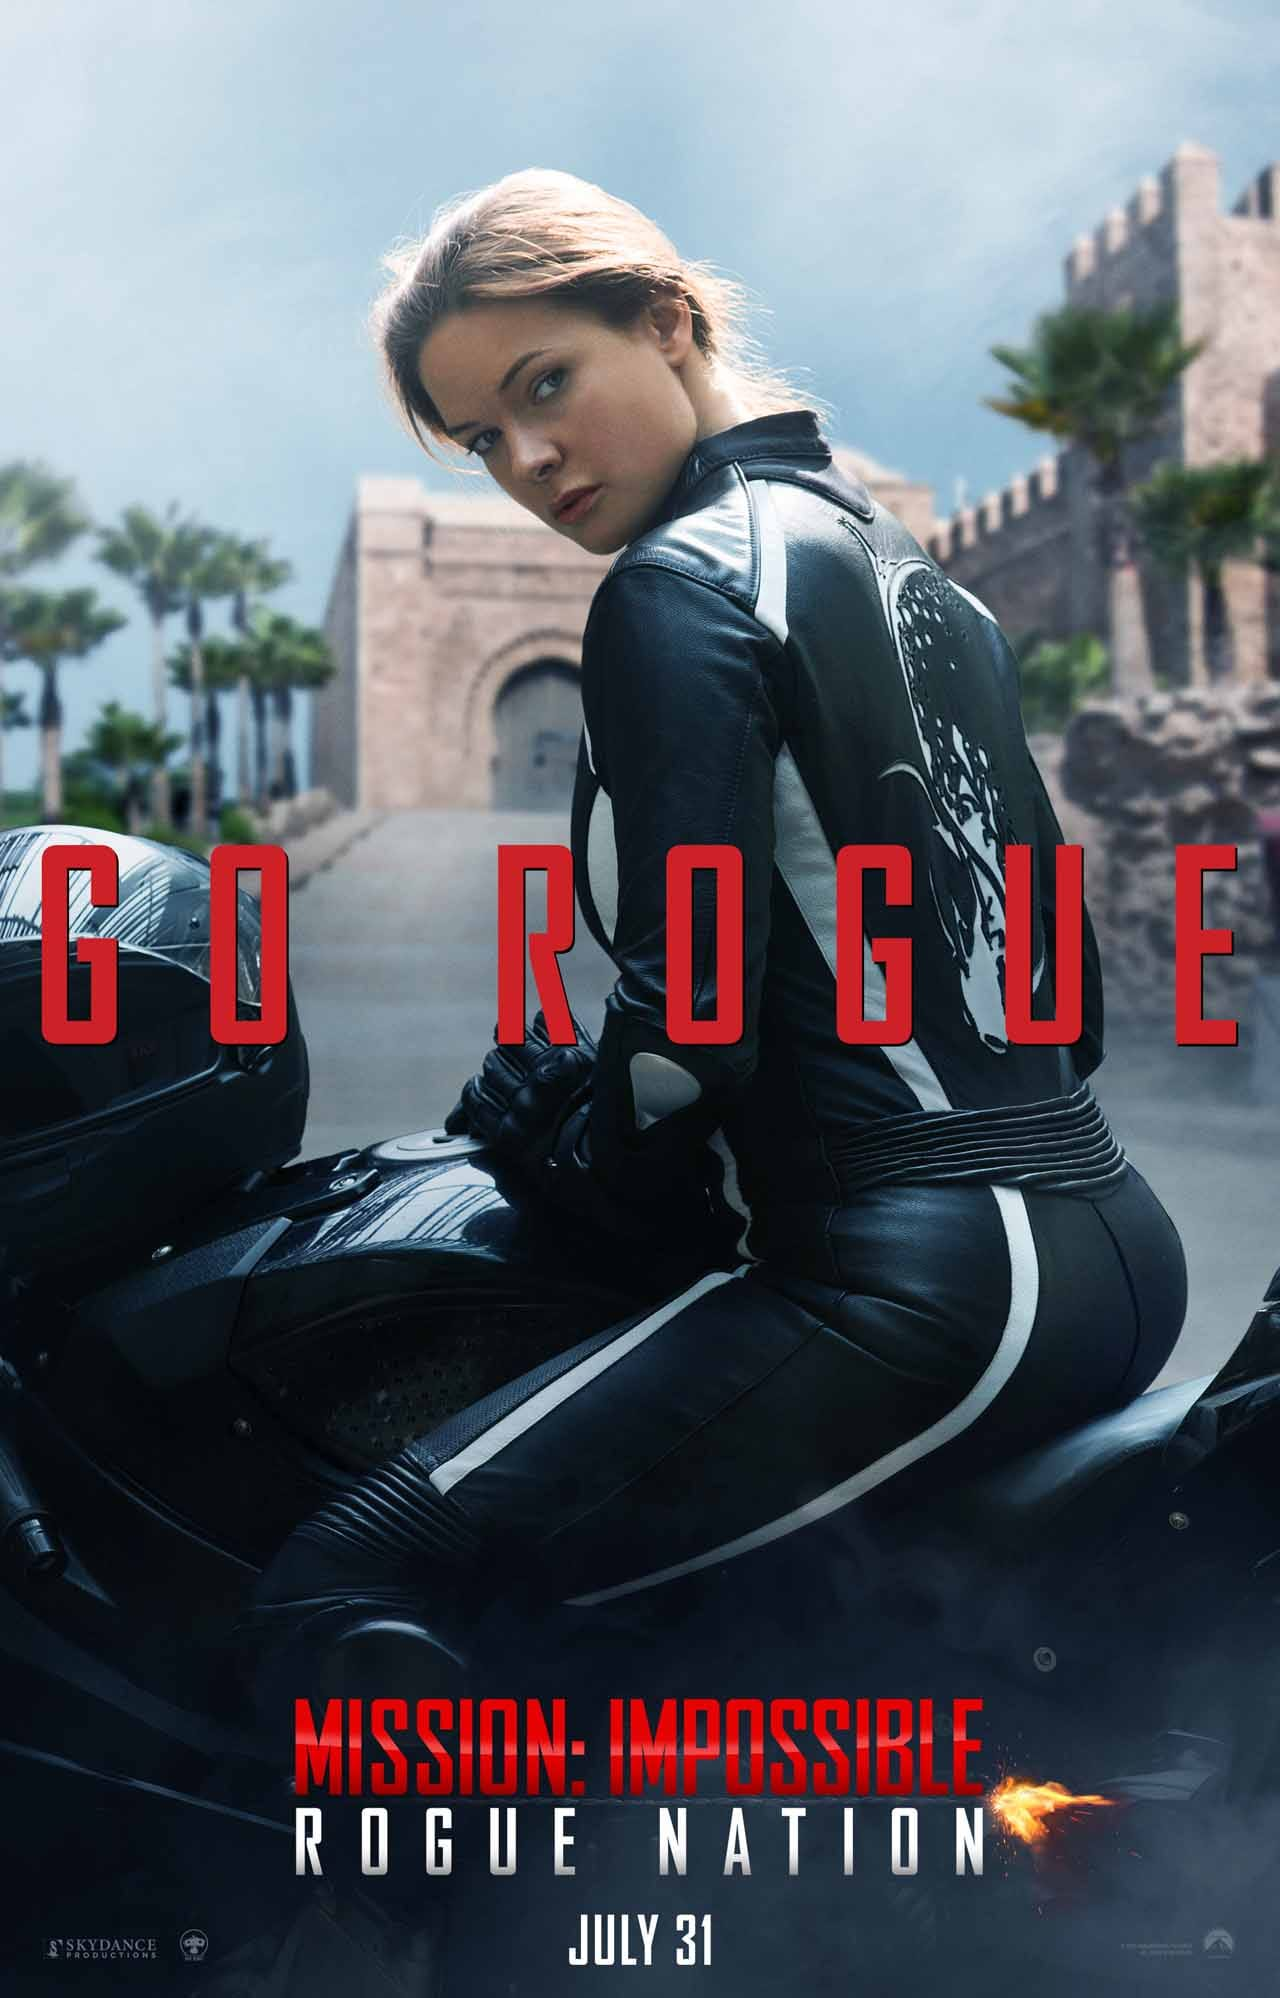 Mission: Impossible - Rogue Nation Desktop wallpapers